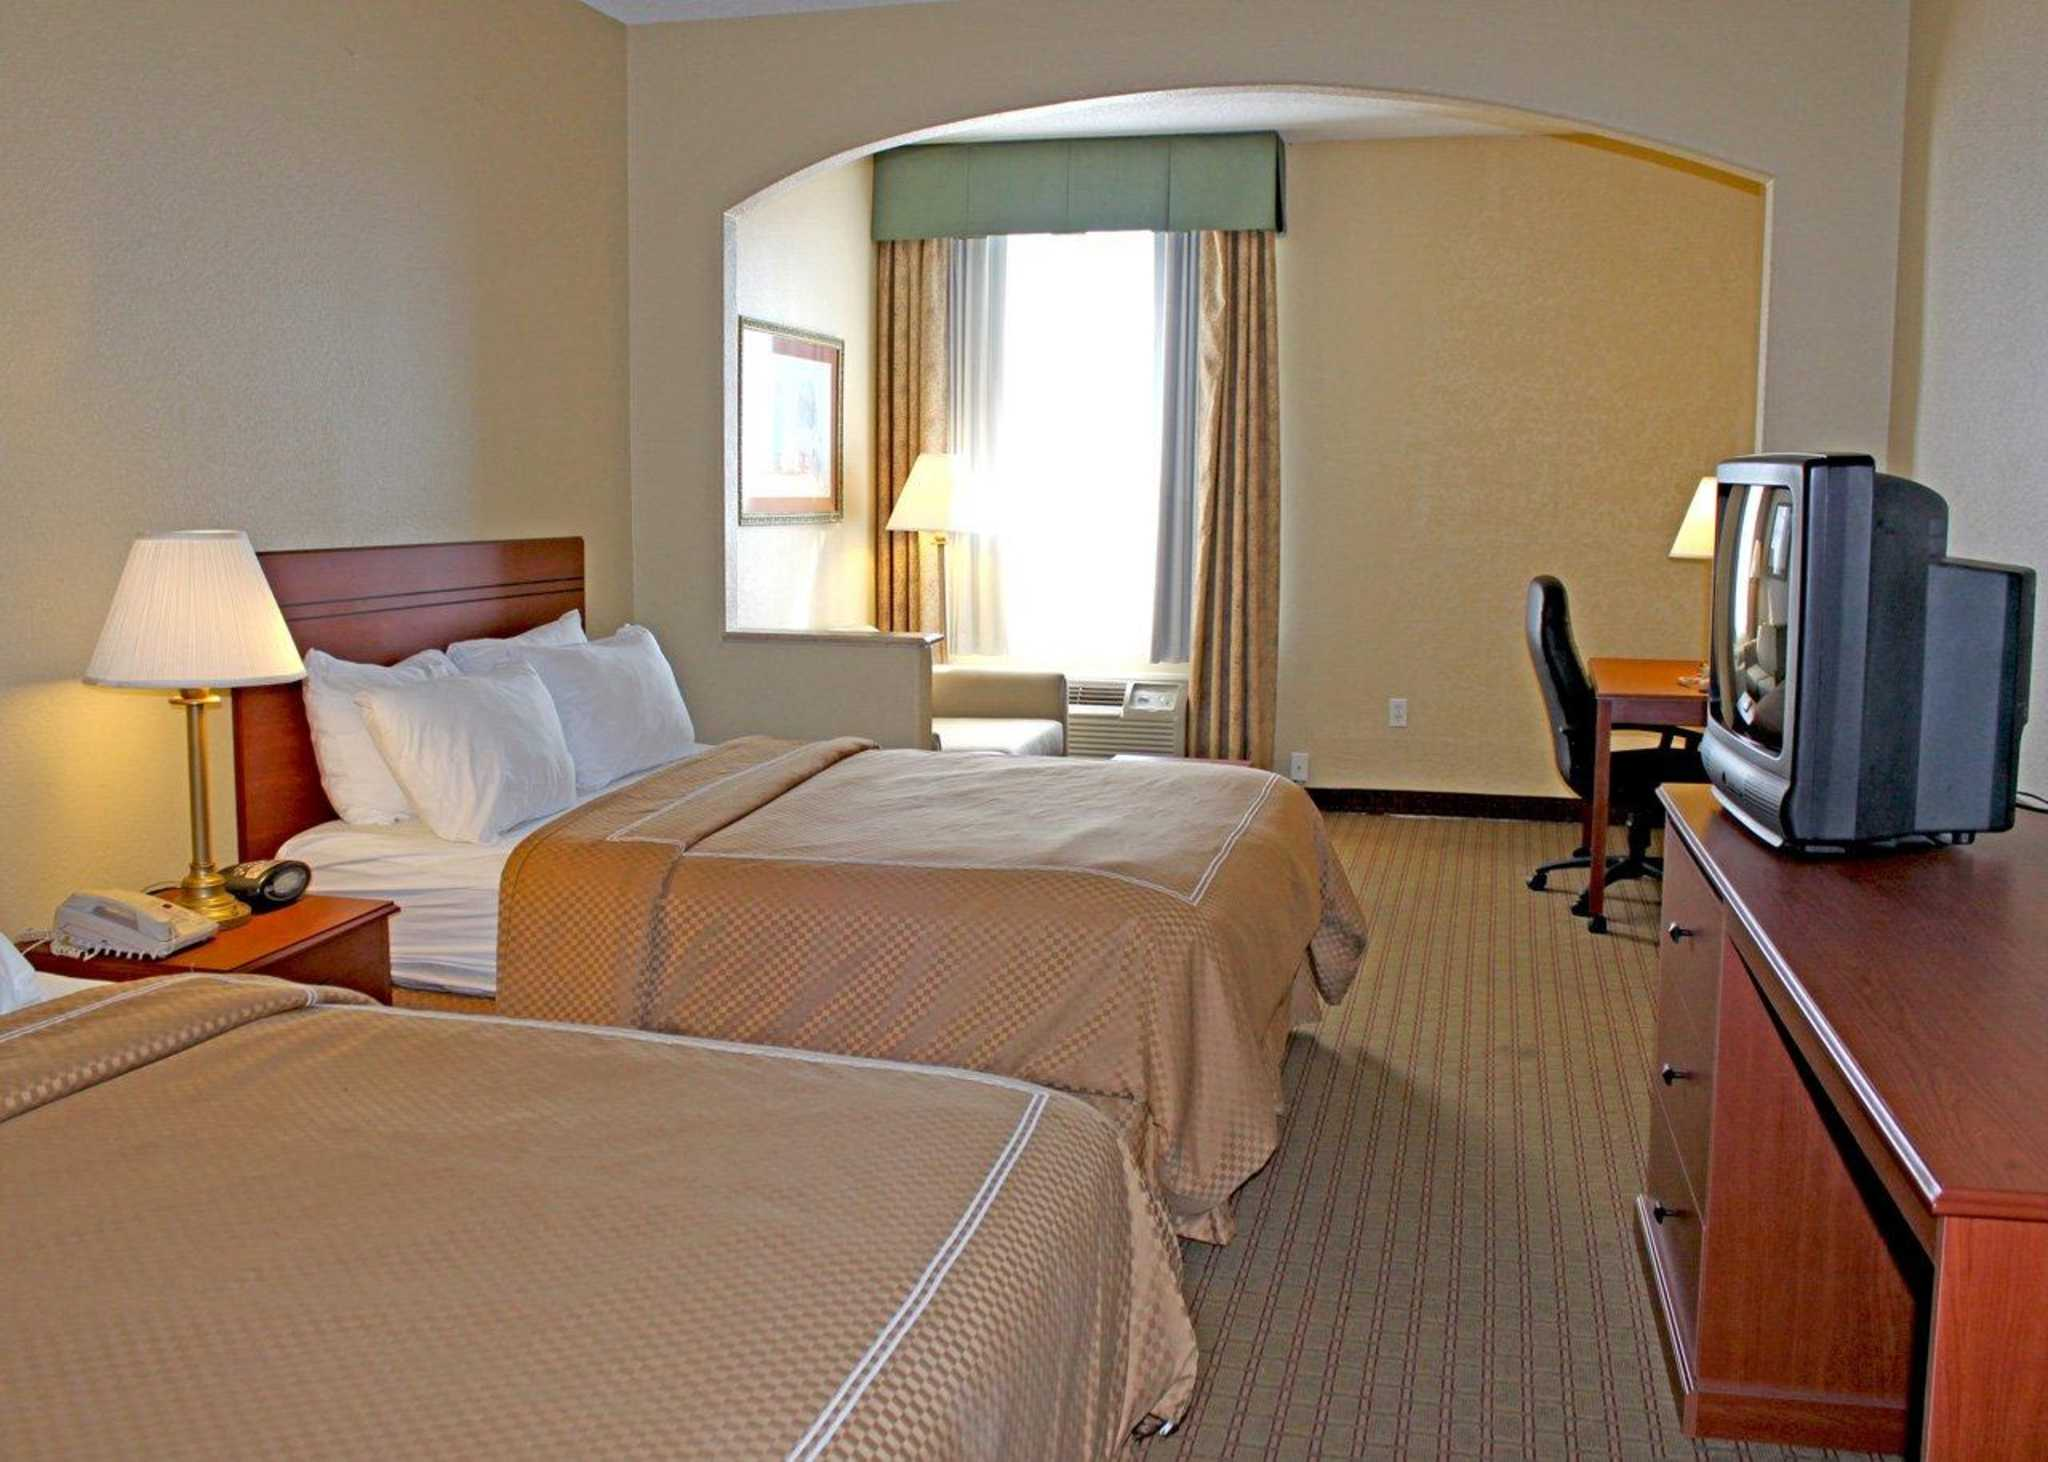 Quality Suites South image 3